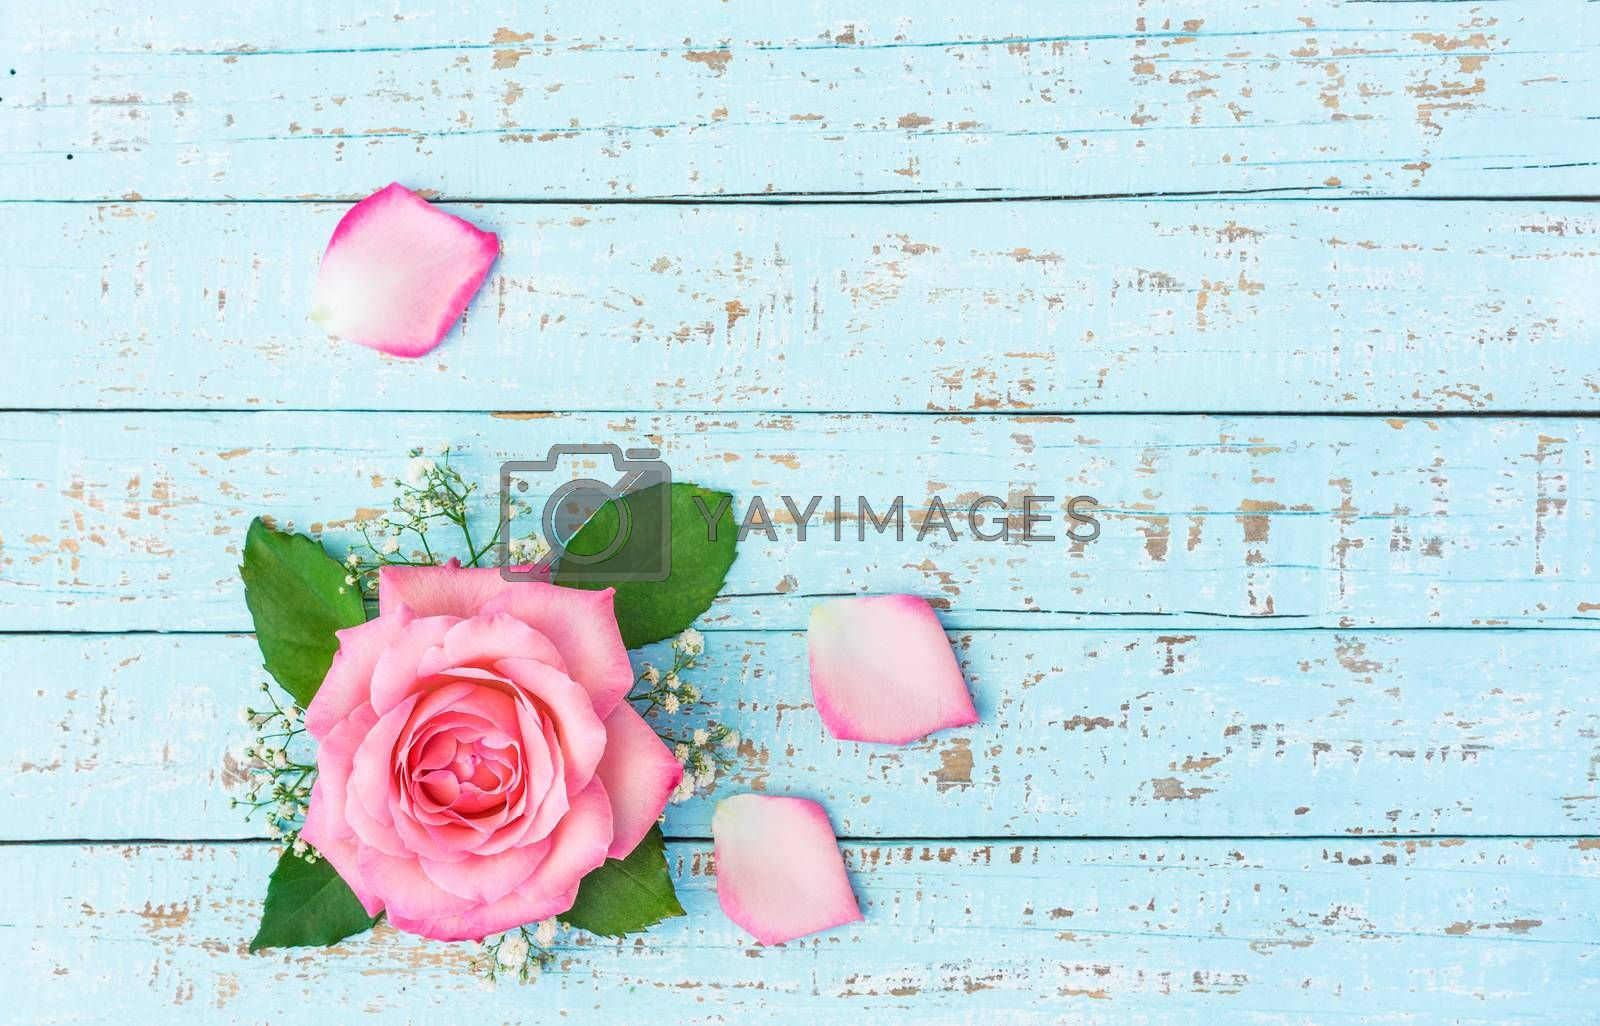 Pink rose flower head with petals on blue background with copy space, top view